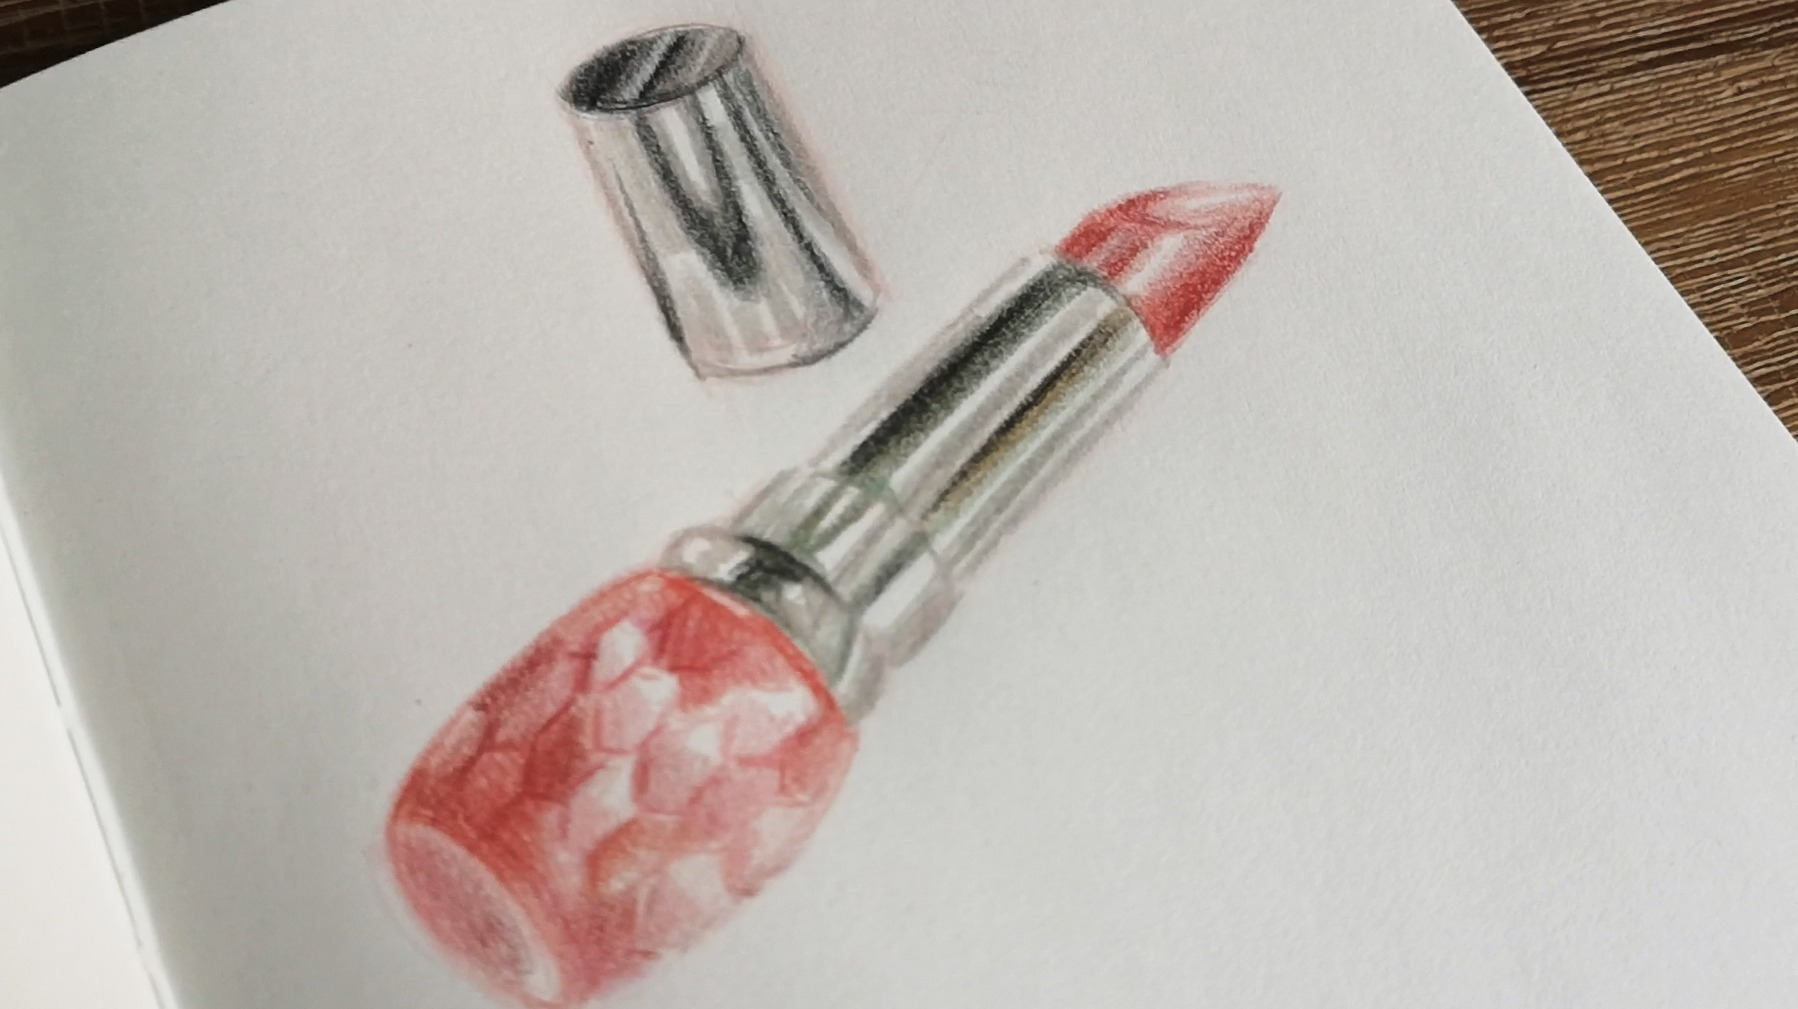 Drawing a Lipstick with Faber Castell Polychromos on Sketchbook paper, Shiseido Prior